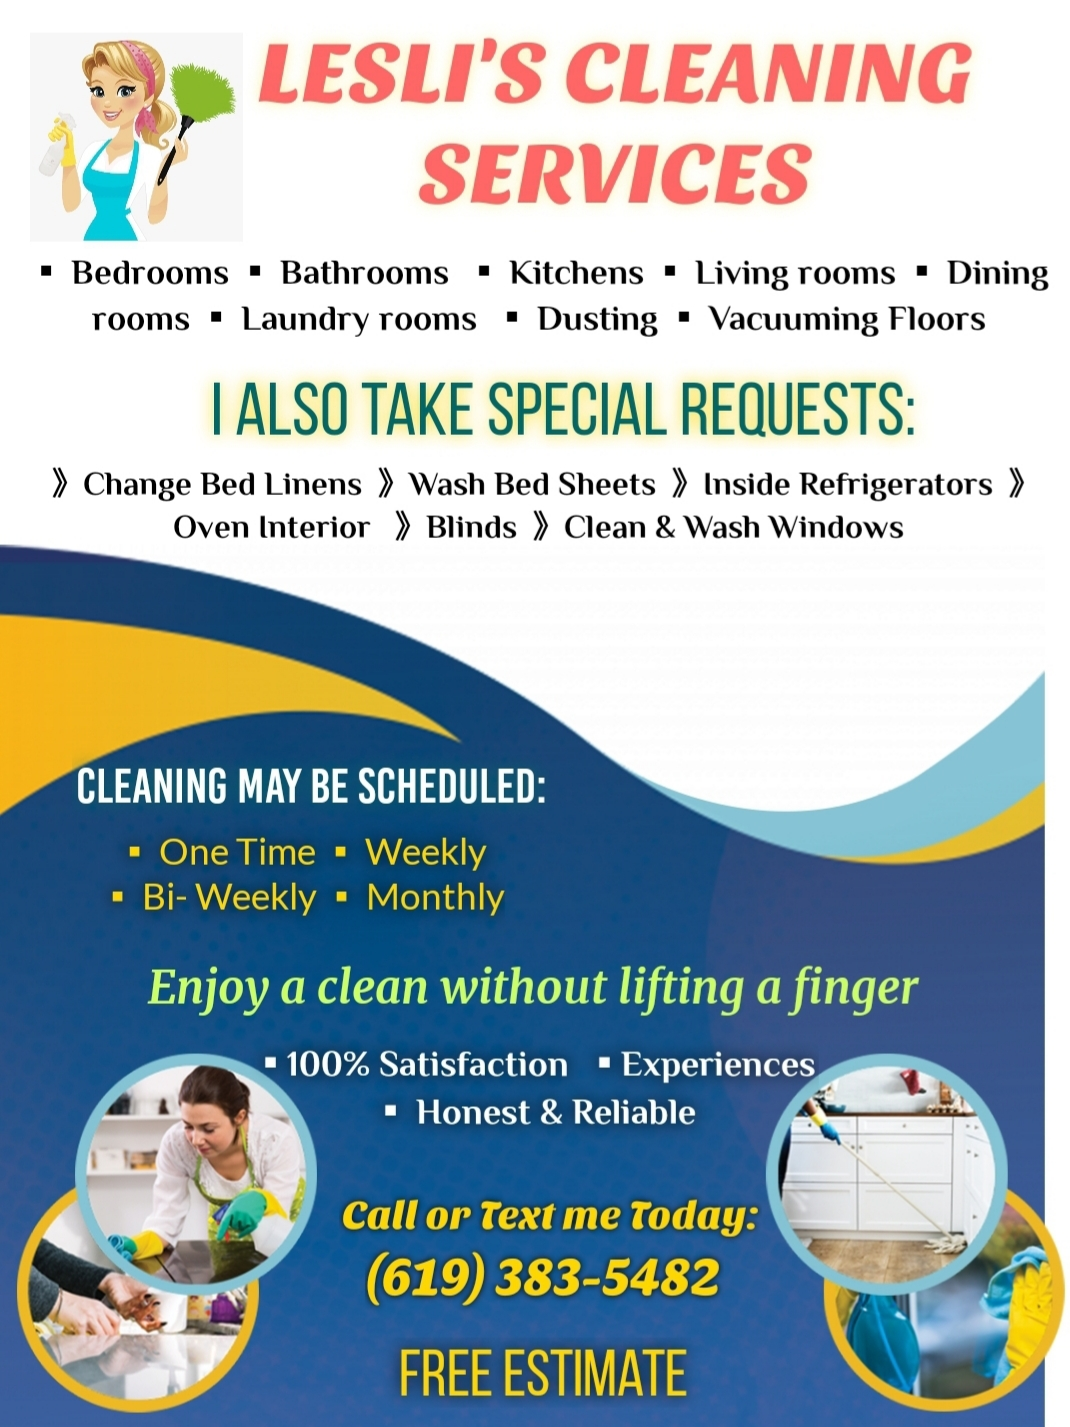 Lesli's Cleaning Services